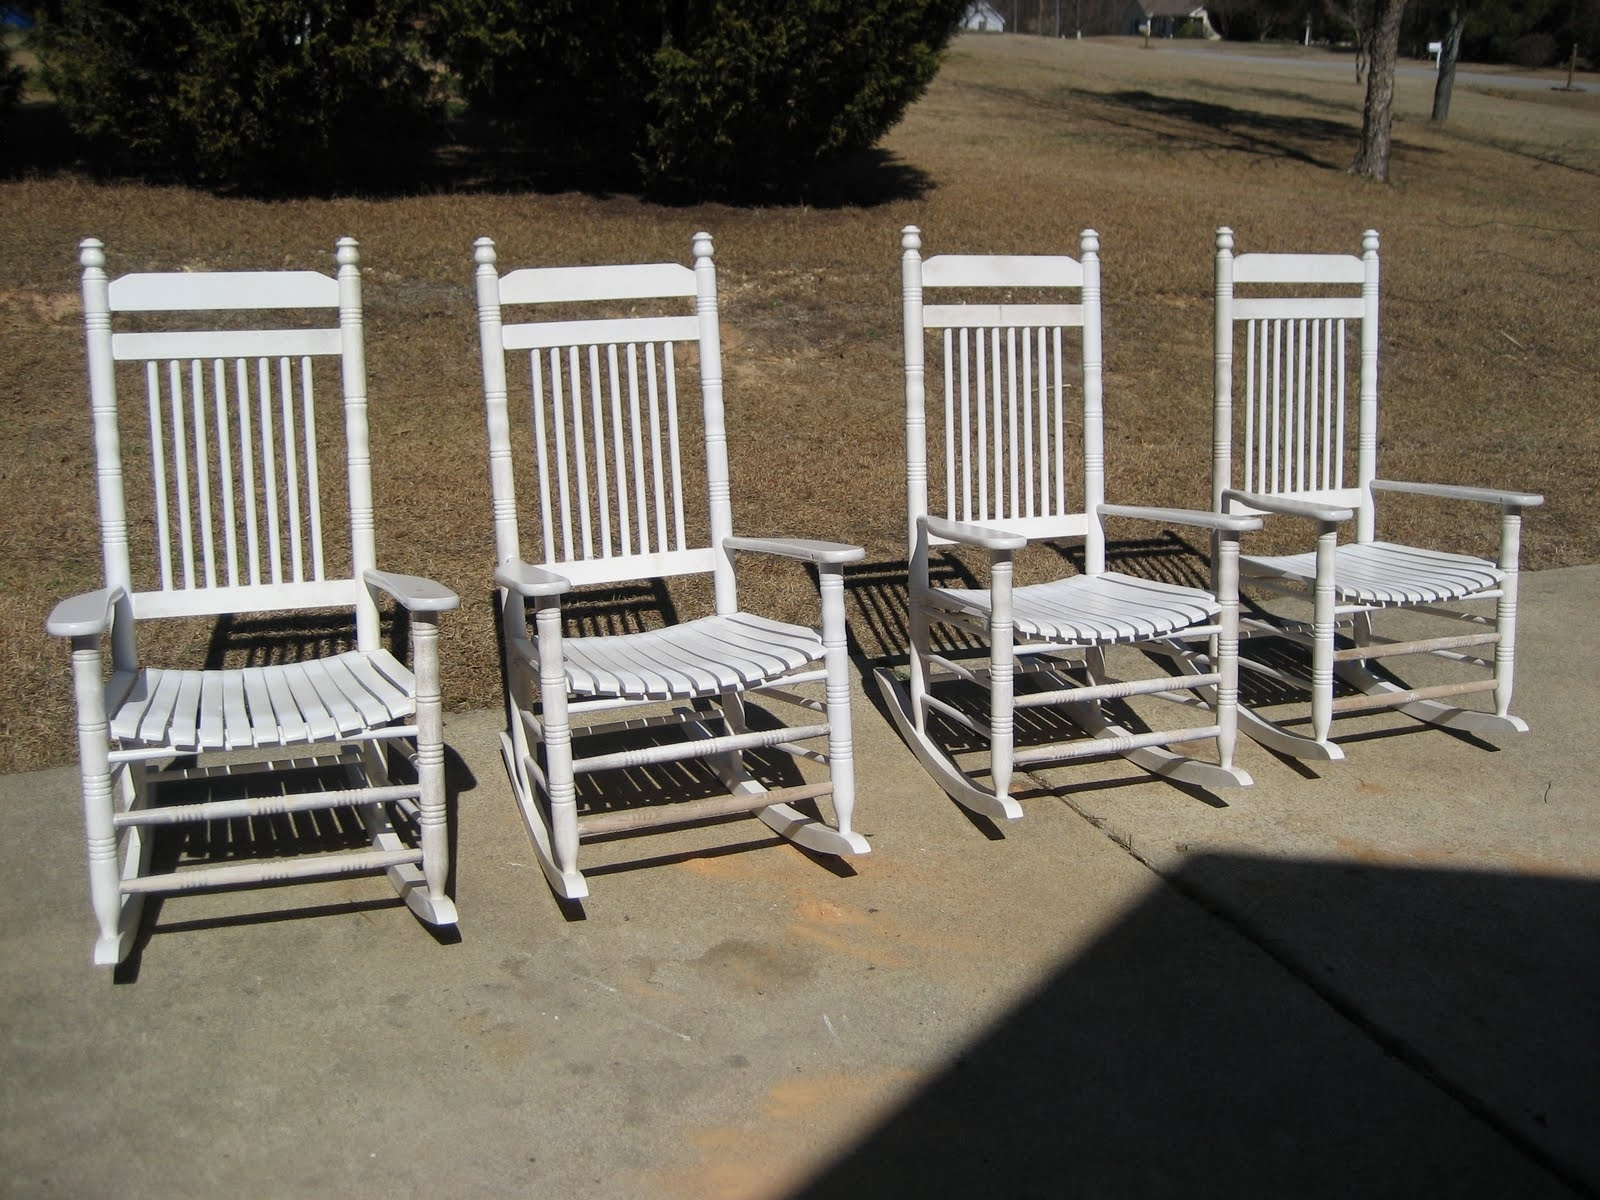 Widely Used Rocking Chairs At Cracker Barrel With Garden & Patio Furniture : Cracker Barrel Rocking Chair Barrel (View 15 of 15)